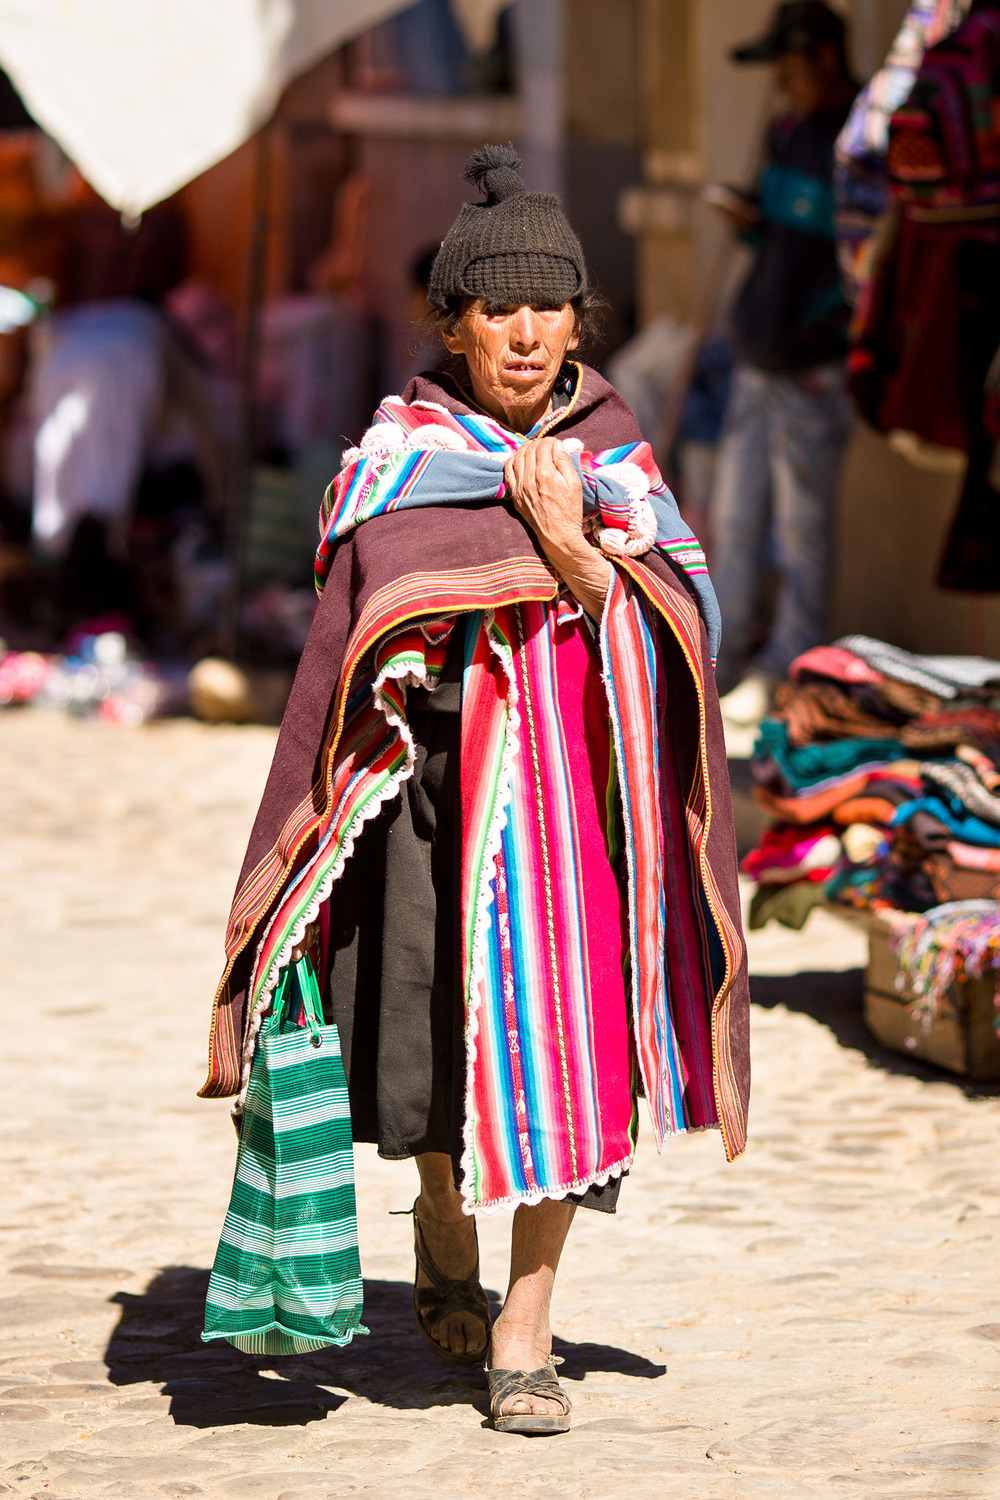 Wedding-Travellers-destination-wedding-bolivia-25.jpg